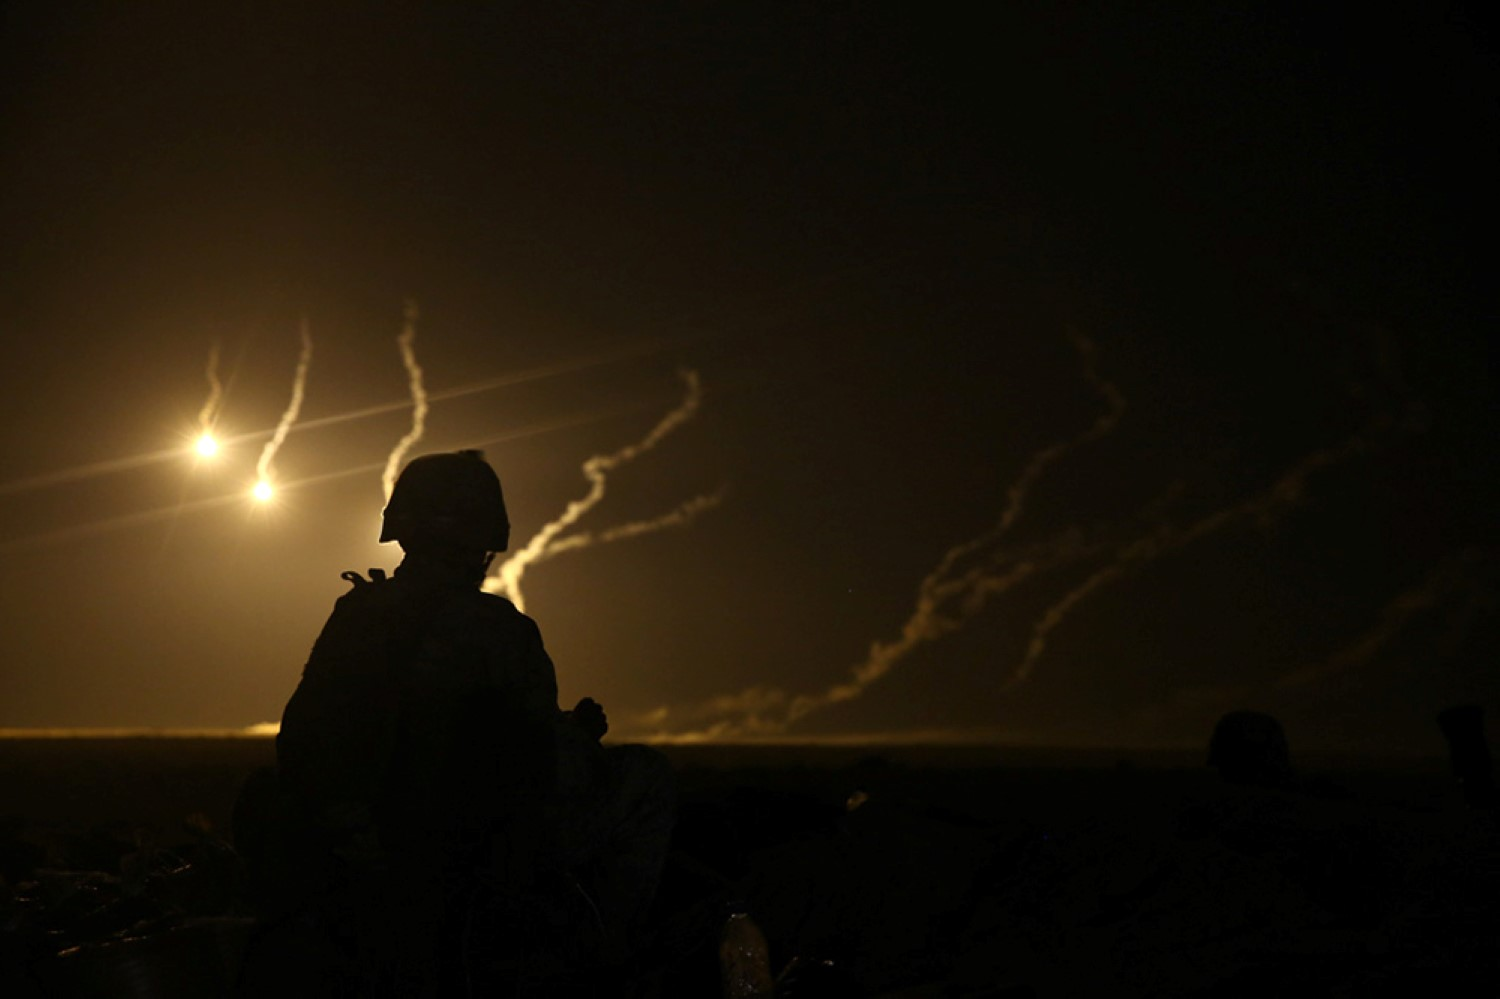 A U.S. Marine with Weapons Company, Battalion Landing Team 2nd Battalion, 1st Marines, 11th Marine Expeditionary Unit (MEU), watches 81mm illumination mortar rounds fall during a joint mortar range with Royal Saudi Naval Forces Marines. US Marine Corps Photo